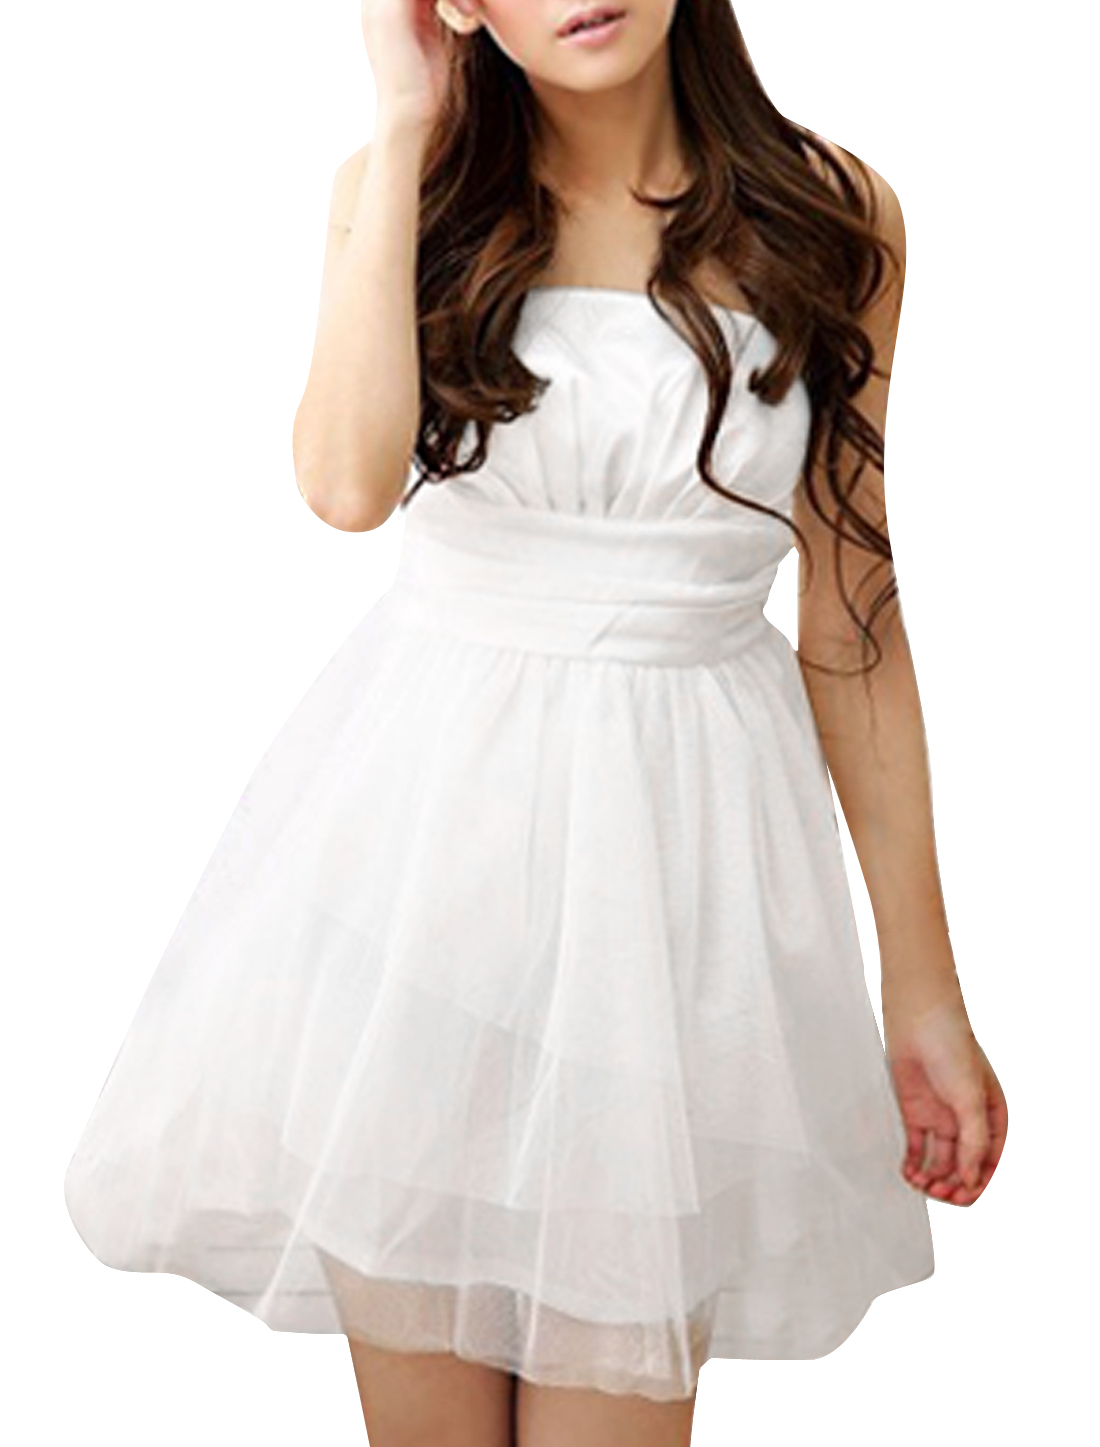 Women White Elastic Smocked Back Strapless Mini Dress XS